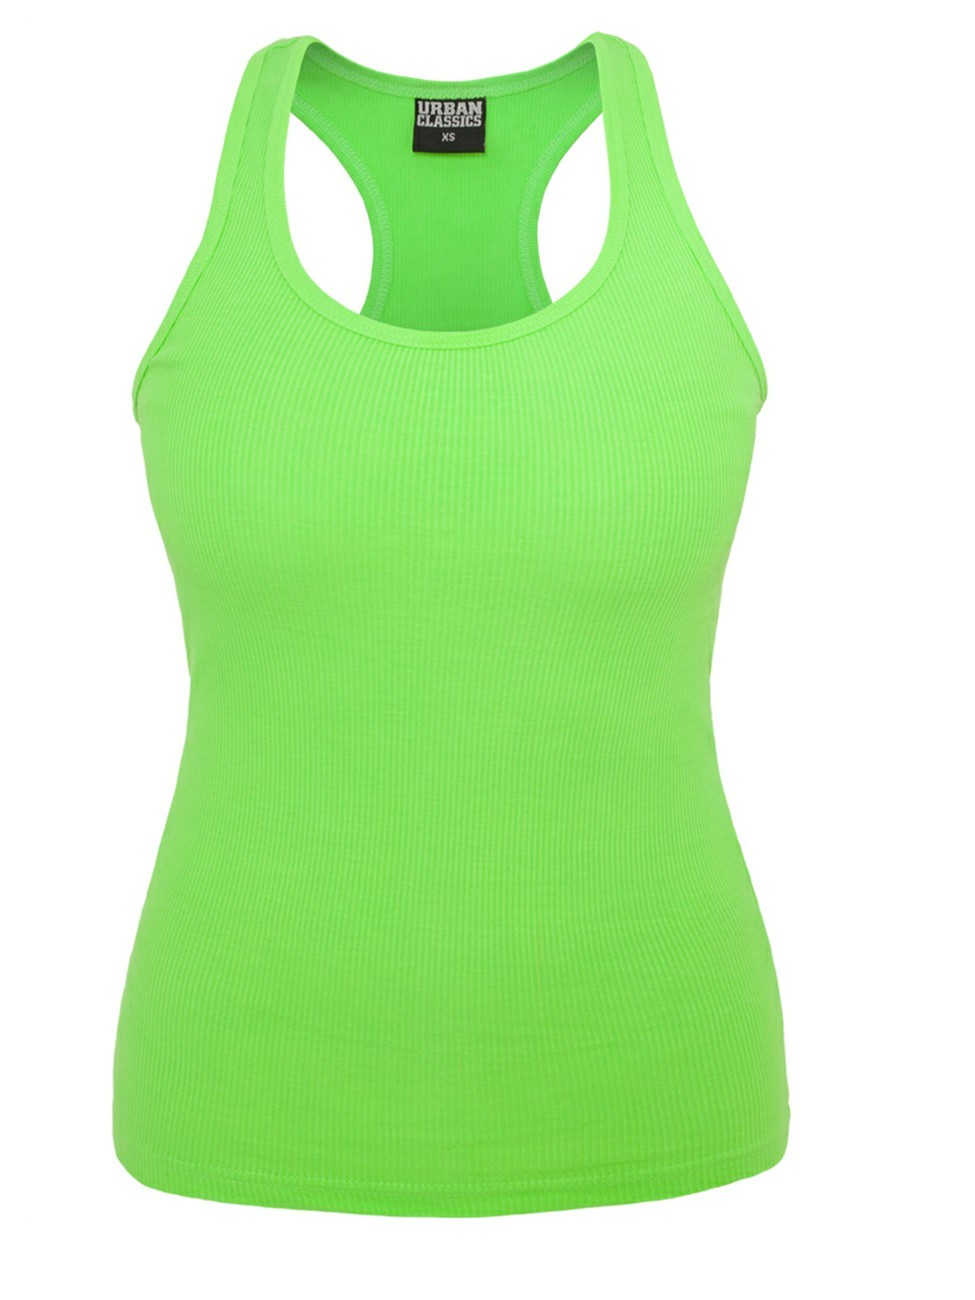 KEYLIME Athletic Wear is located in Sherwood Park, Alberta near coolnup03t.gq offer Canadian-made athletic wear for women, men and teens of all sizes and shapes from extra small to double extra large.